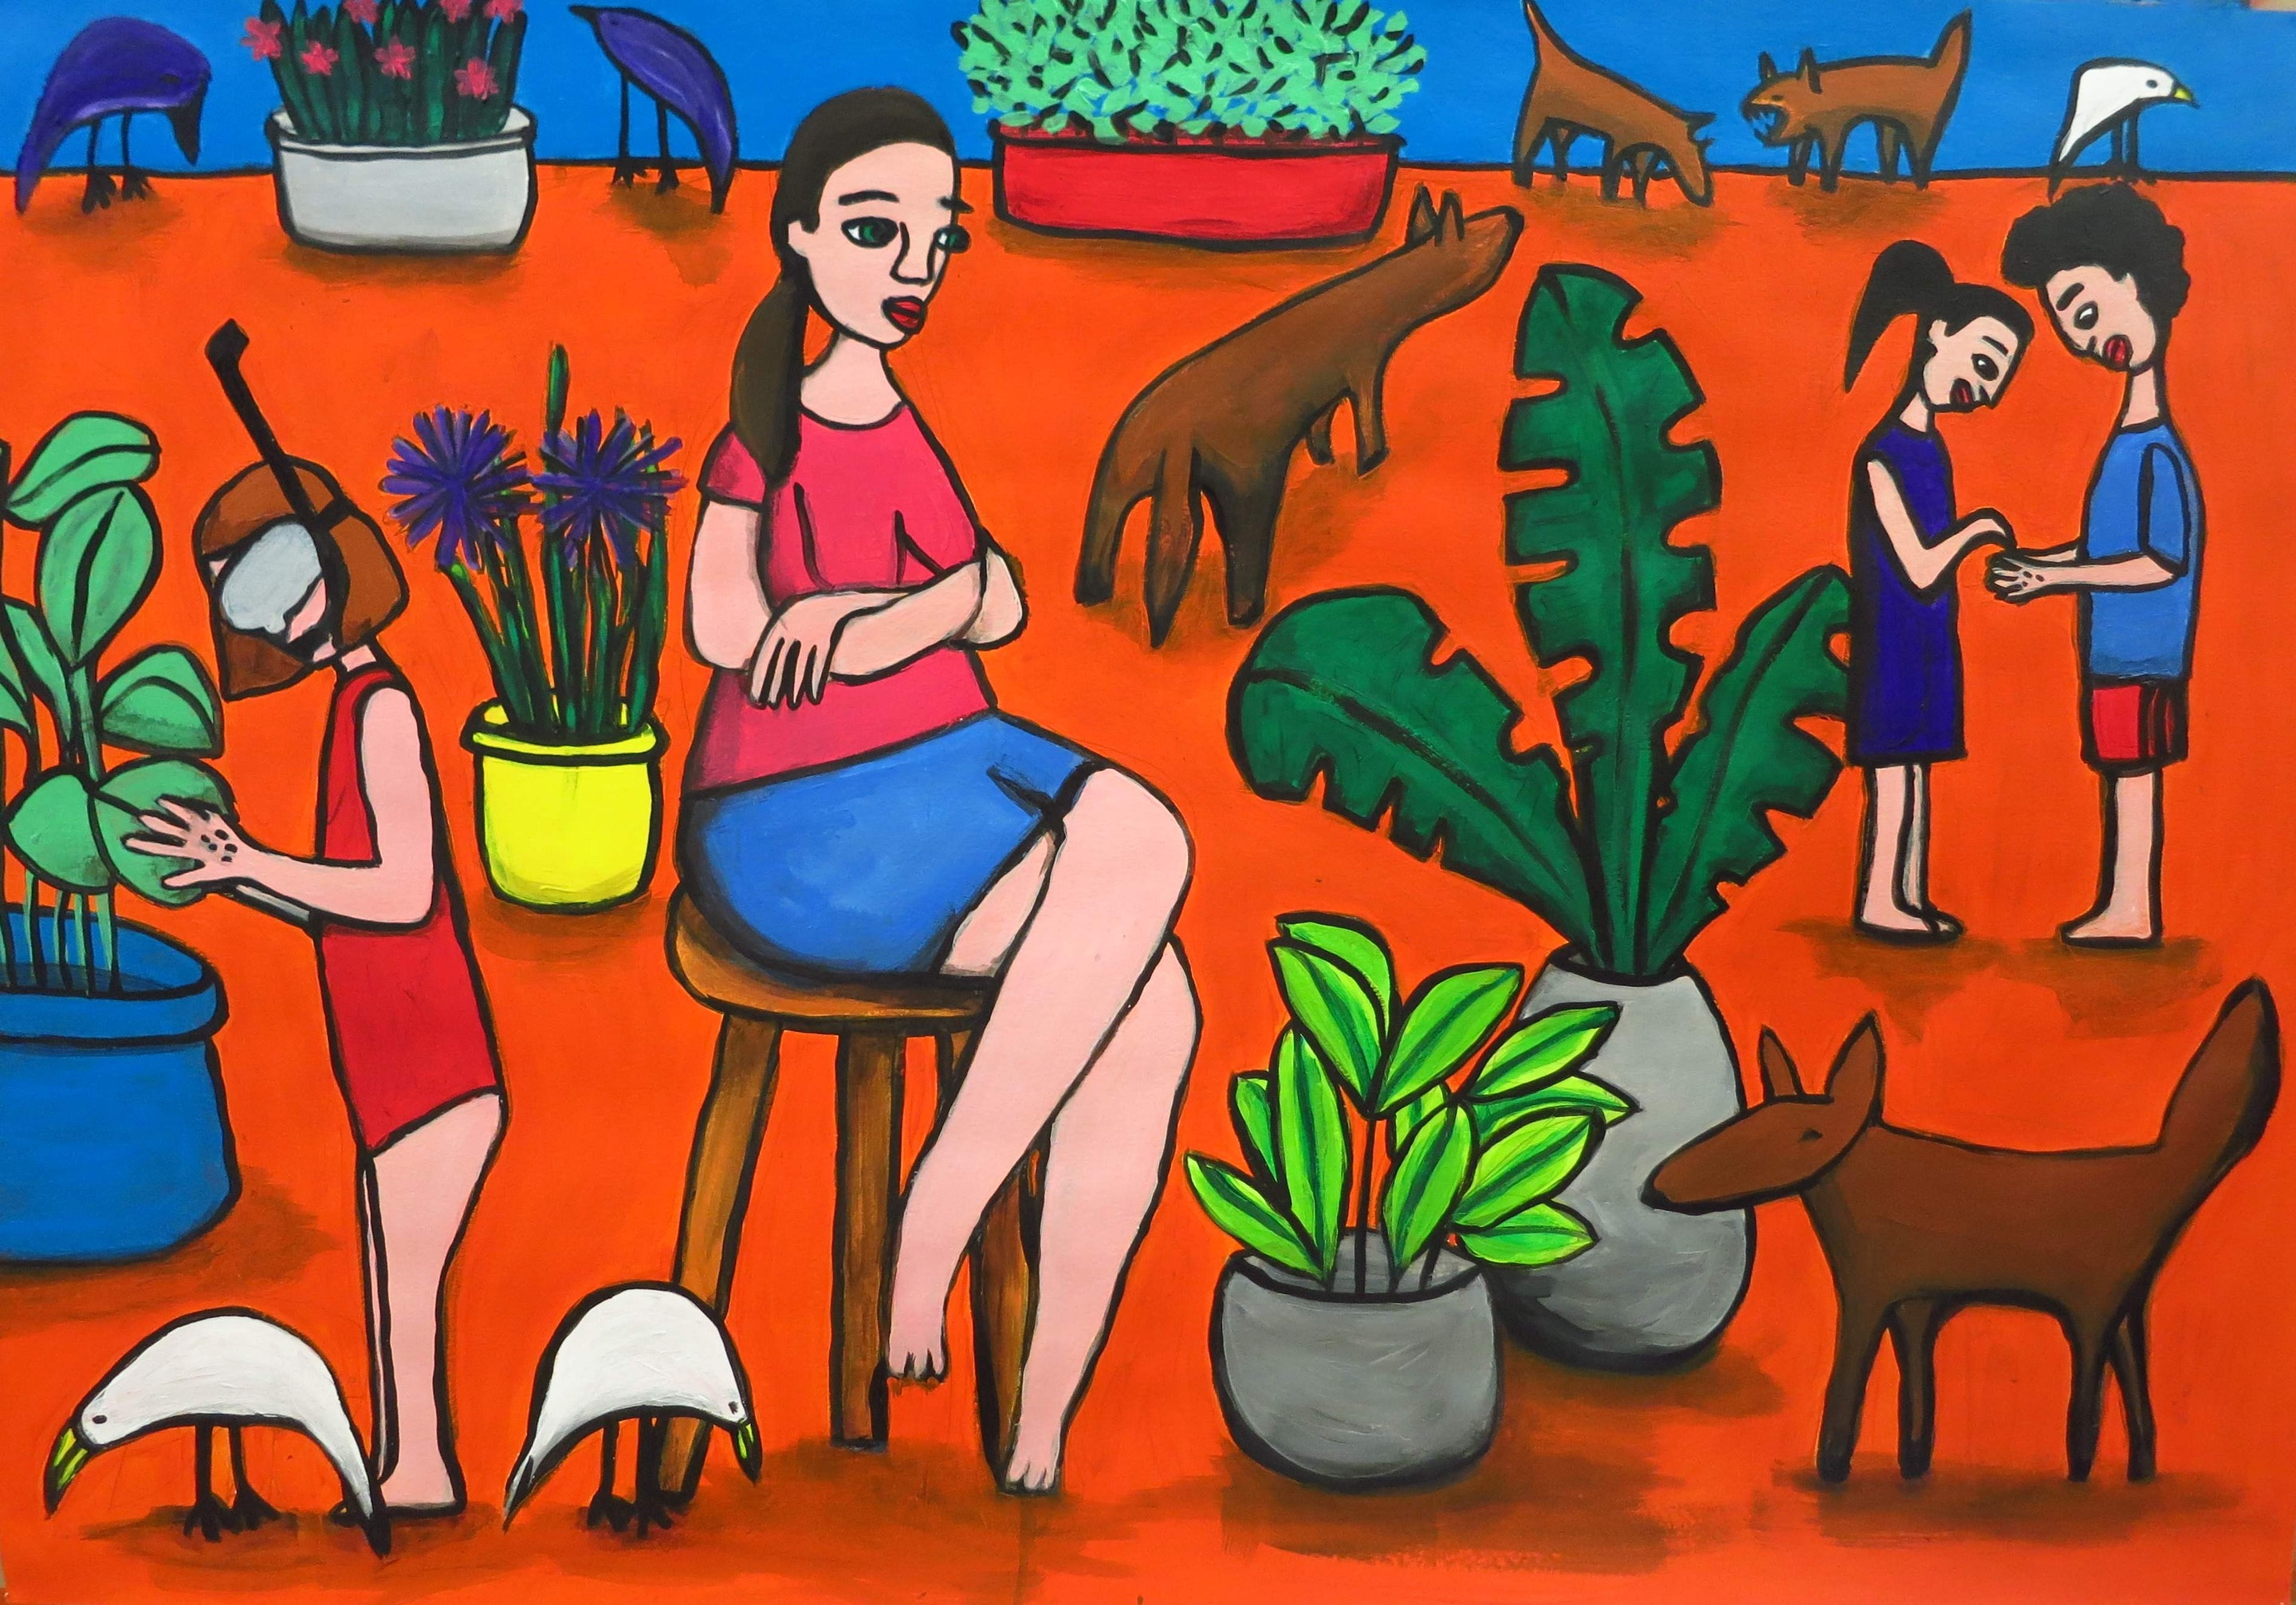 Einat Aloni - Sonia and friends, acrylic on paper, 100X70 cm